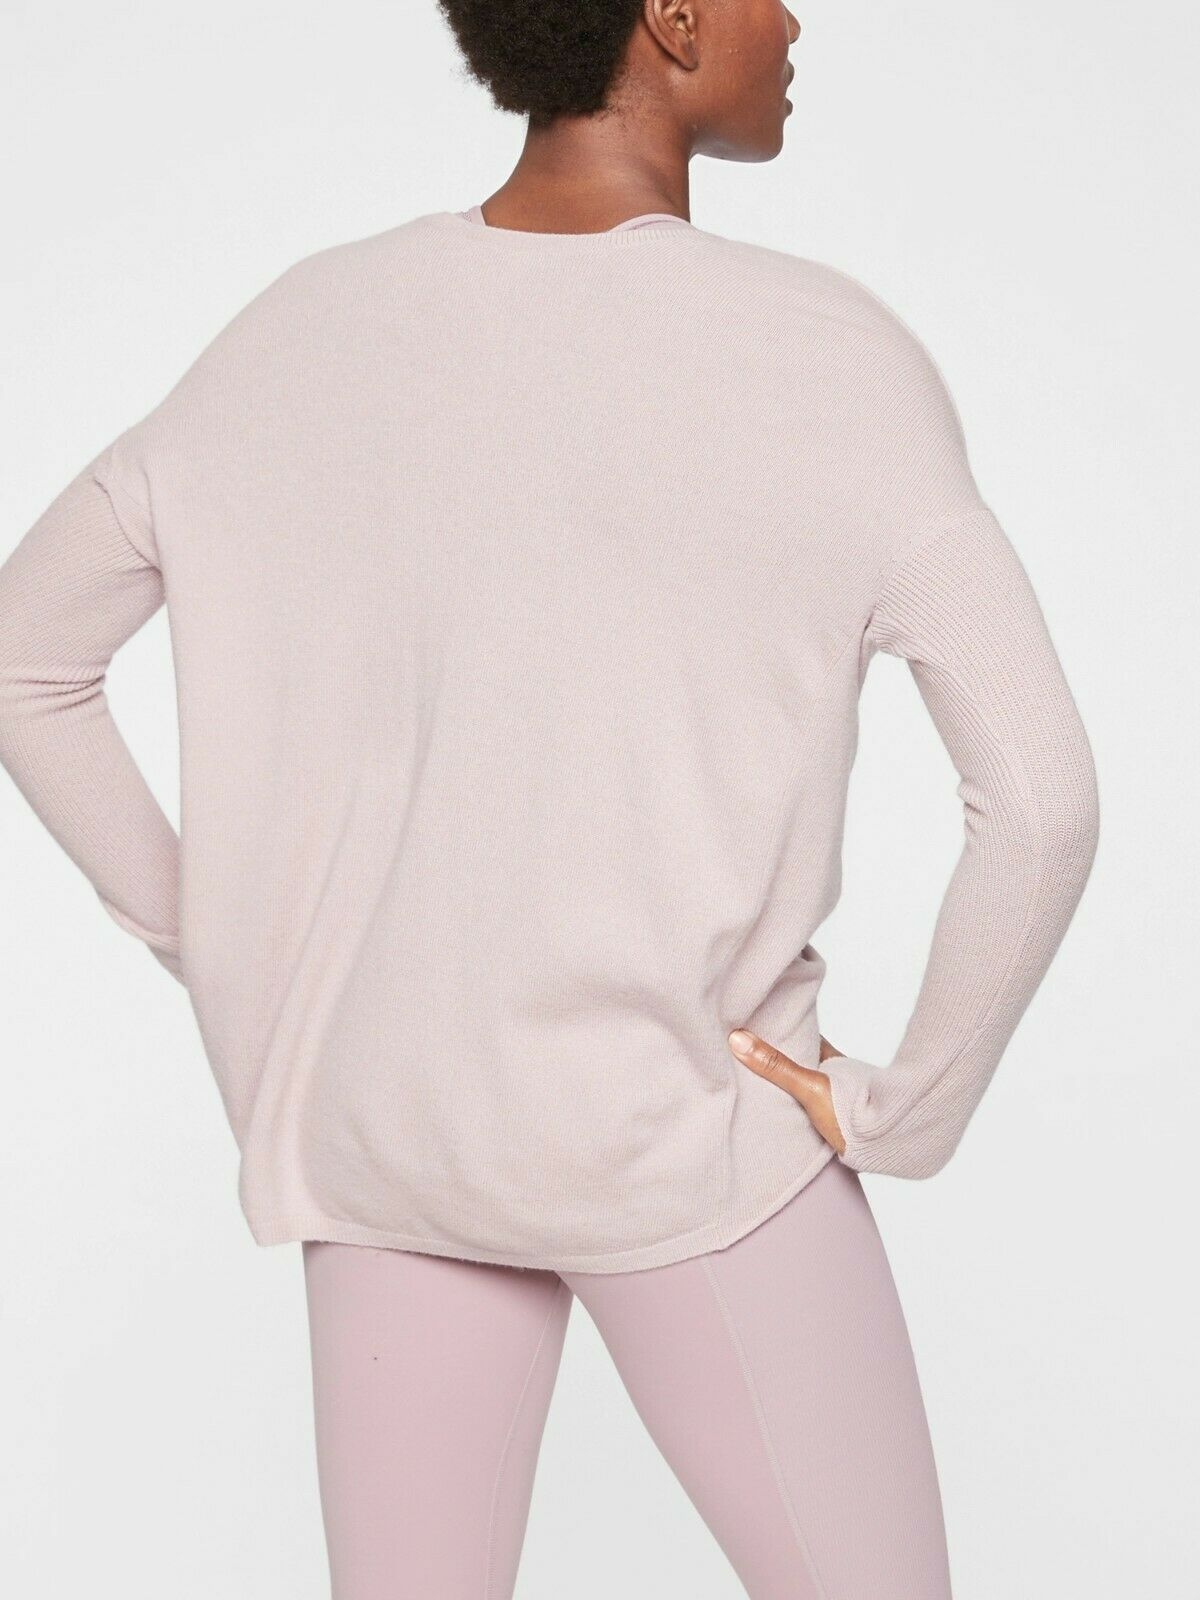 Athleta Finale Wool Cashmere Congreenible Sweater, Dove SIZE SIZE SIZE S      N0302 c32b98